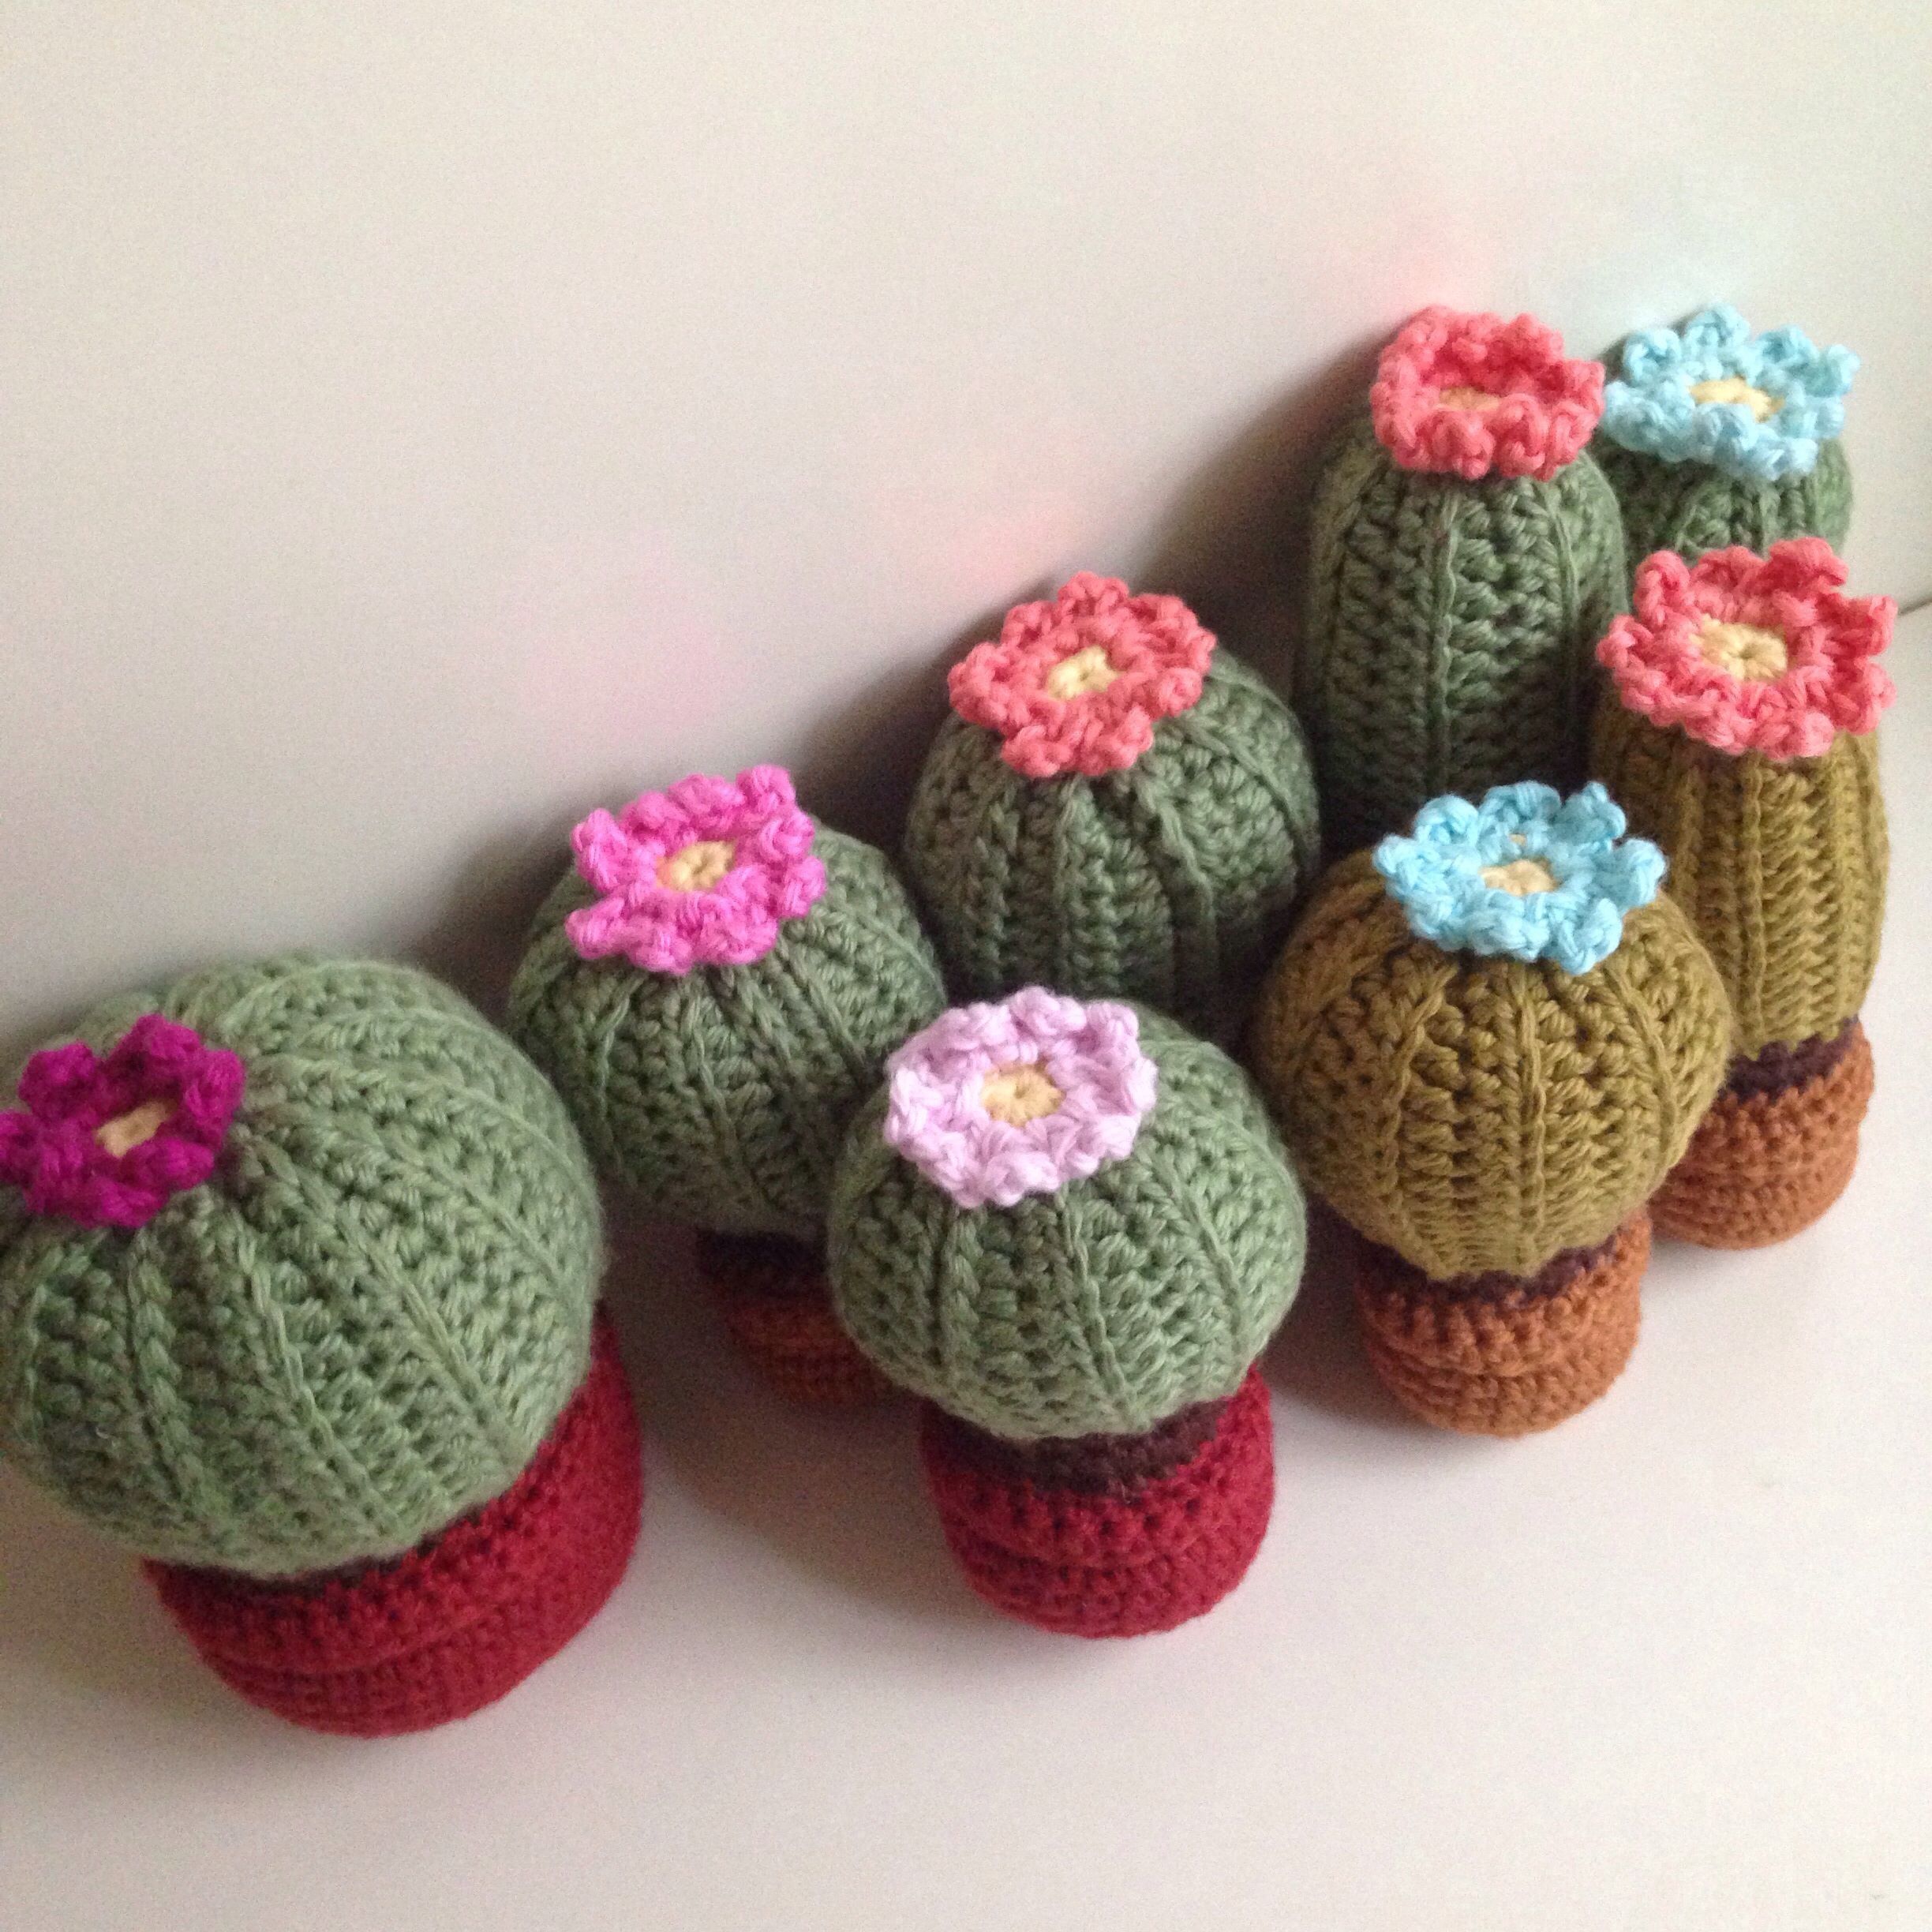 Free Crochet Pattern For Cactus : Crochet cactus crochet Pinterest